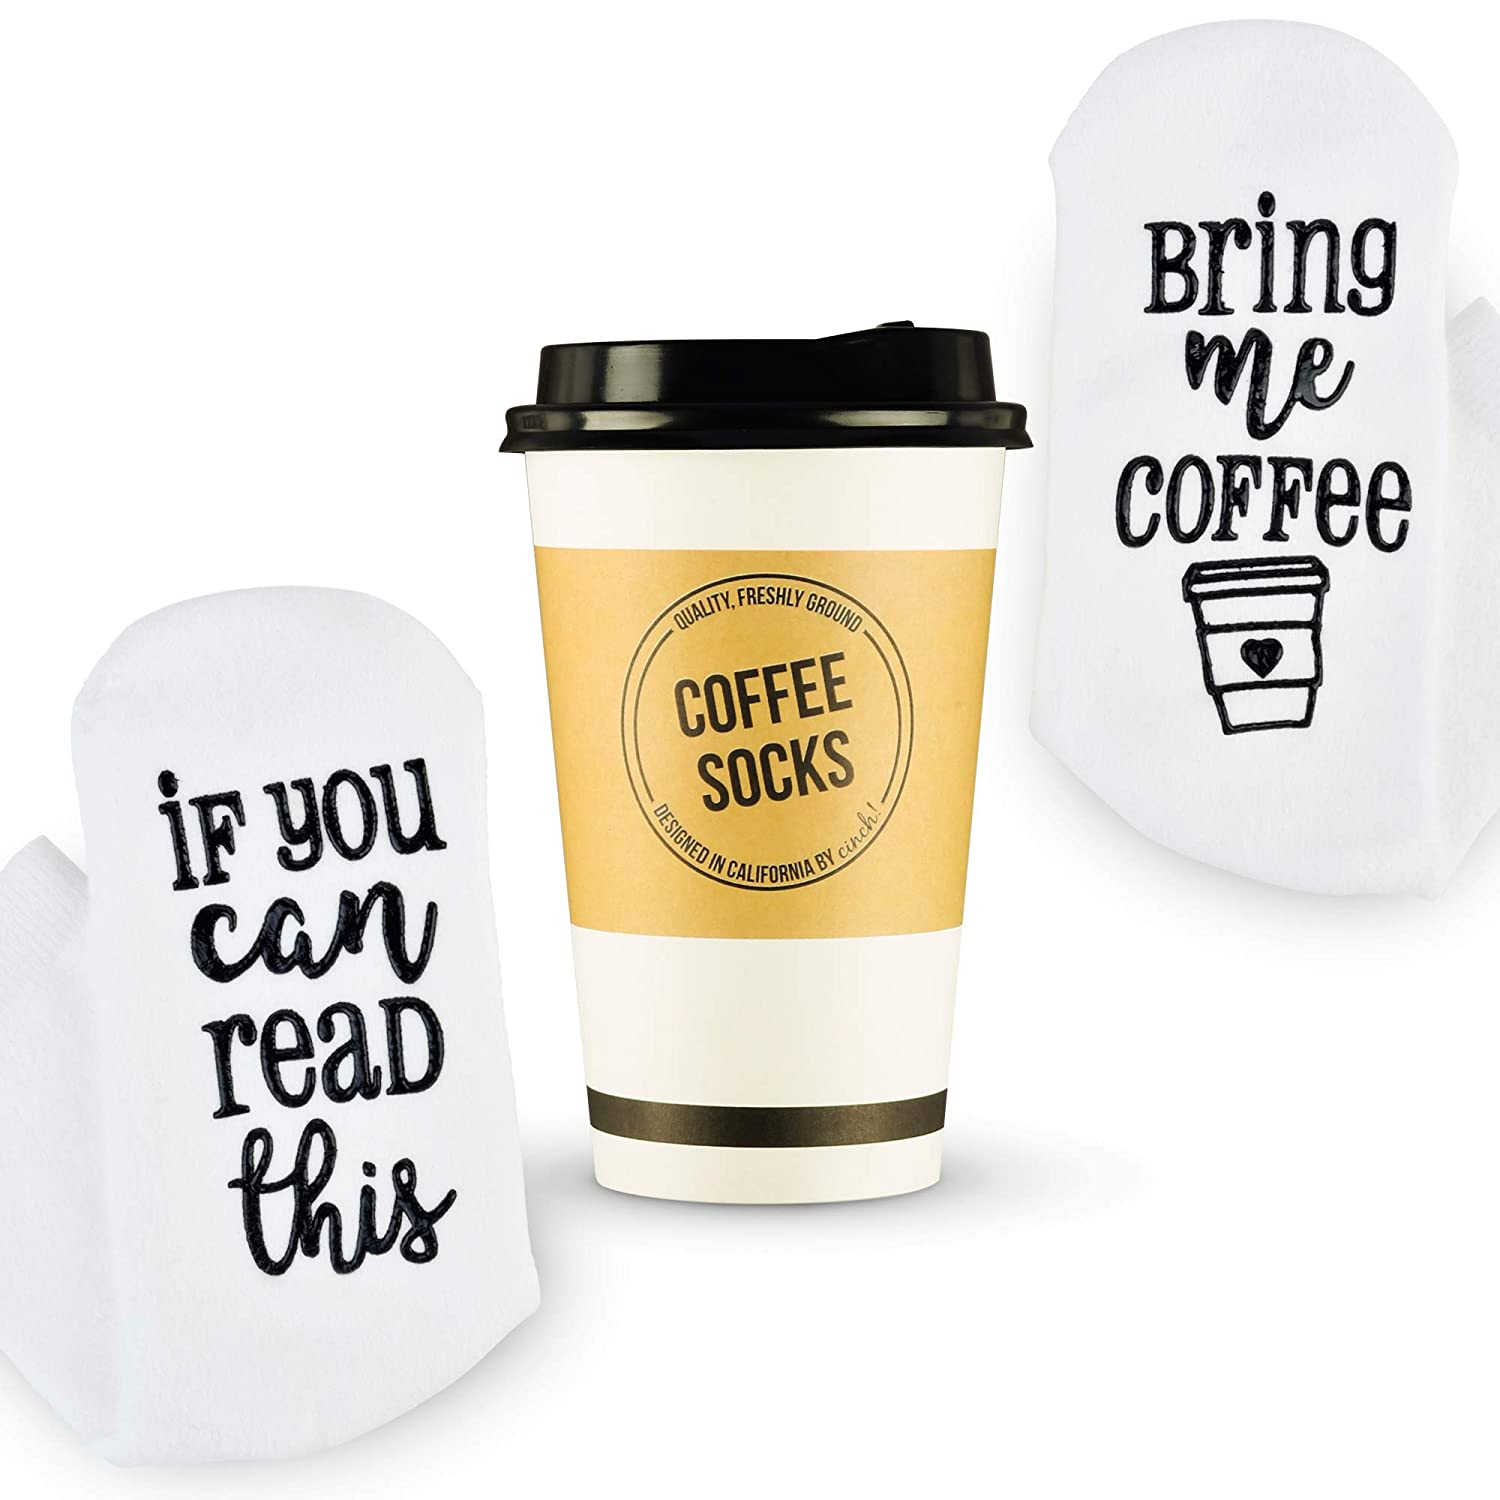 Luxury Coffee Socks with Paper Coffee Cup Gift Packaging: Valentines Day Gift If You Can Read This Bring Me Coffee Sock - Funny Coffee Lovers Gifts, Fun Socks for Women - Top Novelty Present Idea